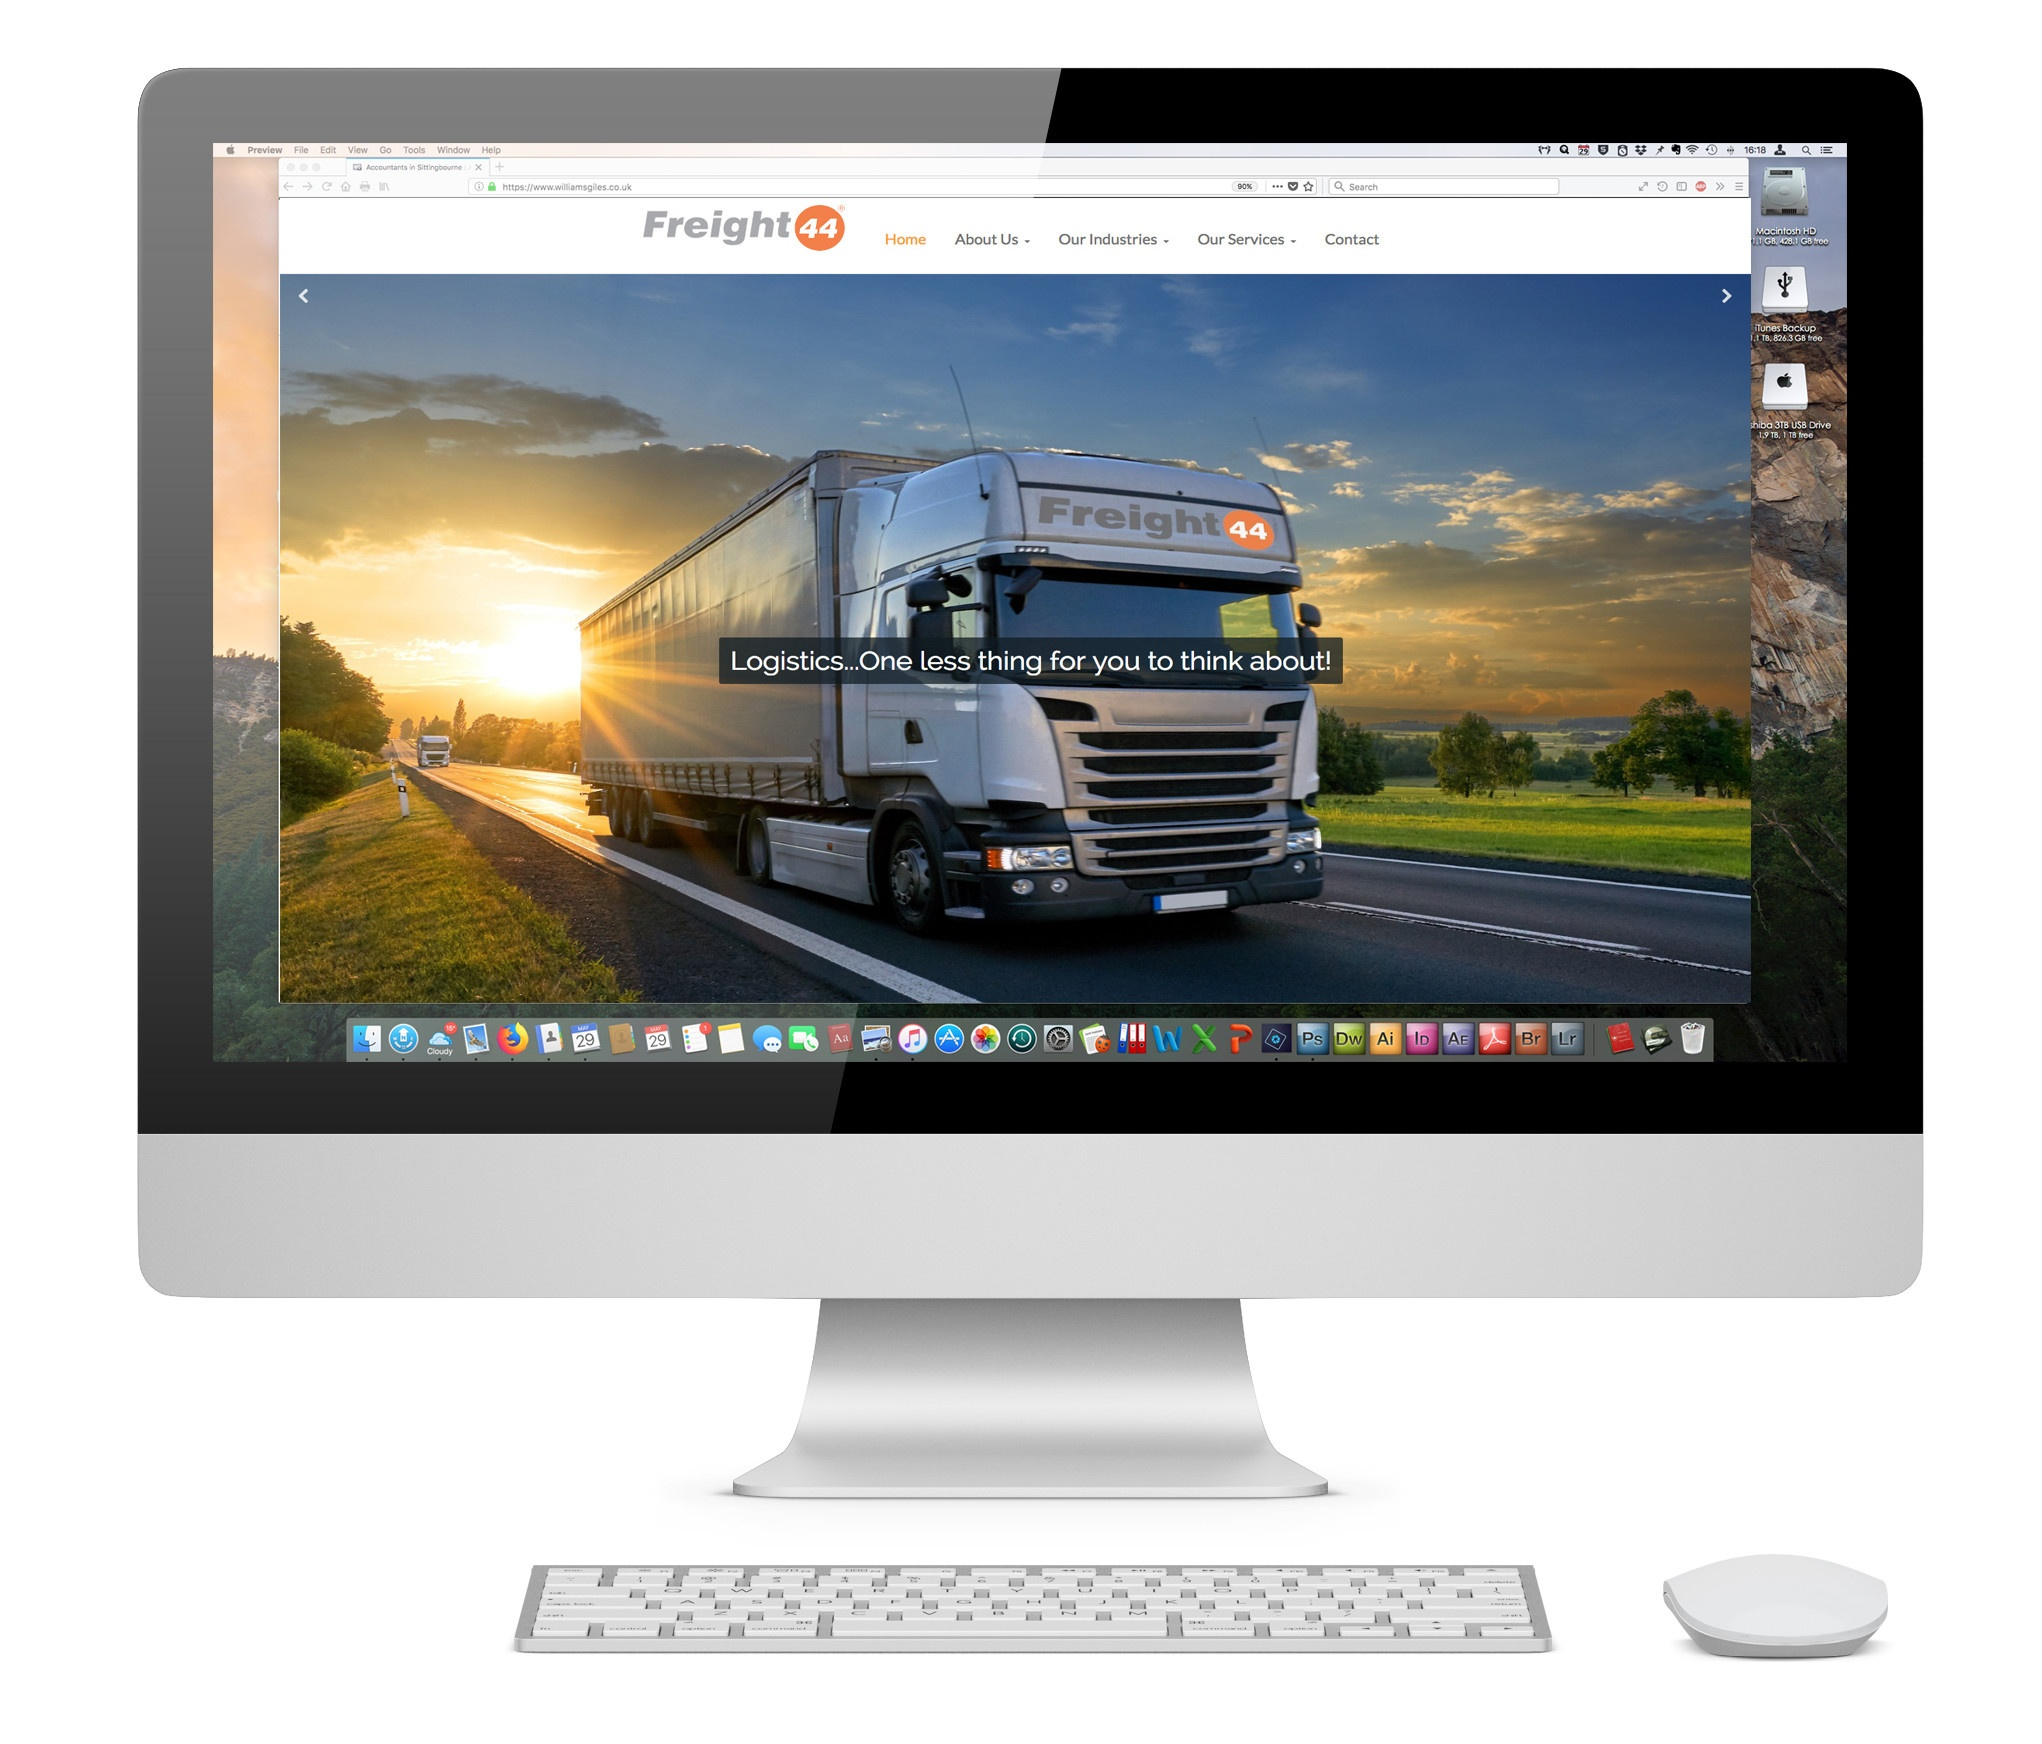 An iMac with the Freight 44 website home page open on it.